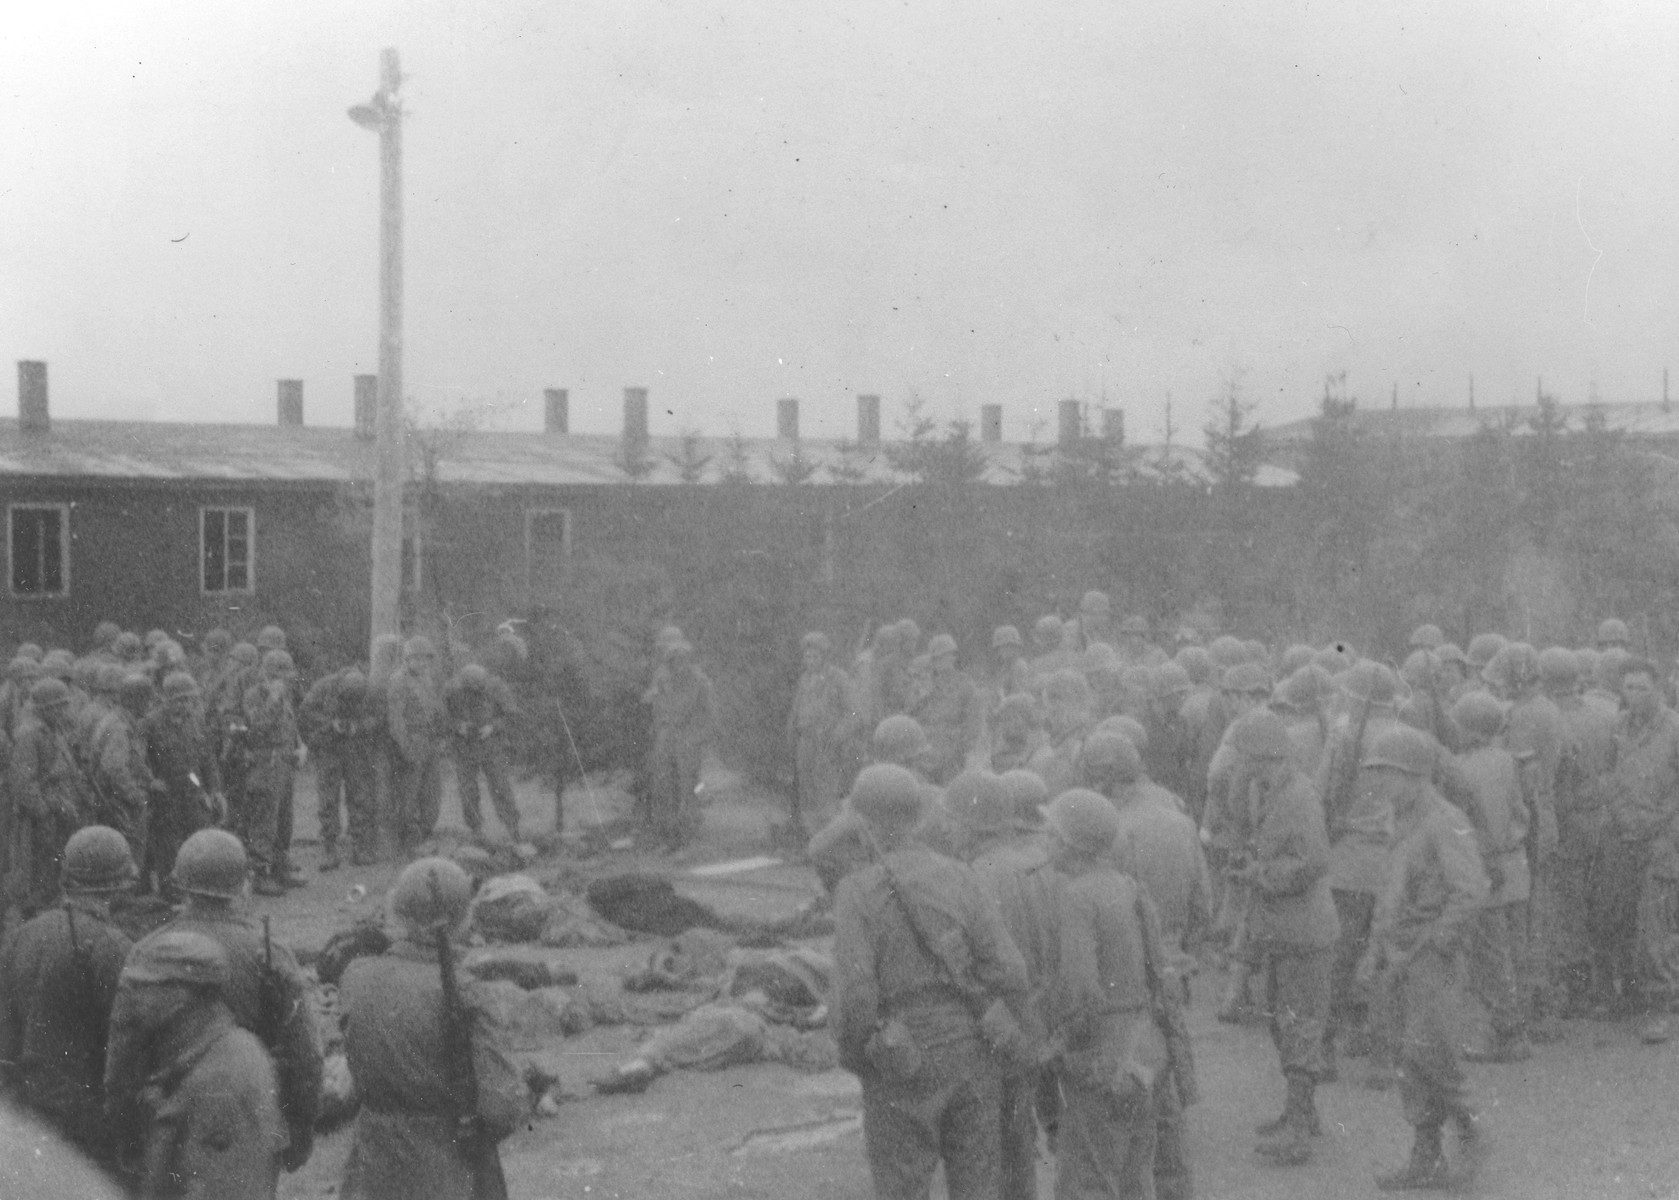 American soldiers view the bodies of Ohrdruf prisoners who were killed during the evacuation of the concentration camp.